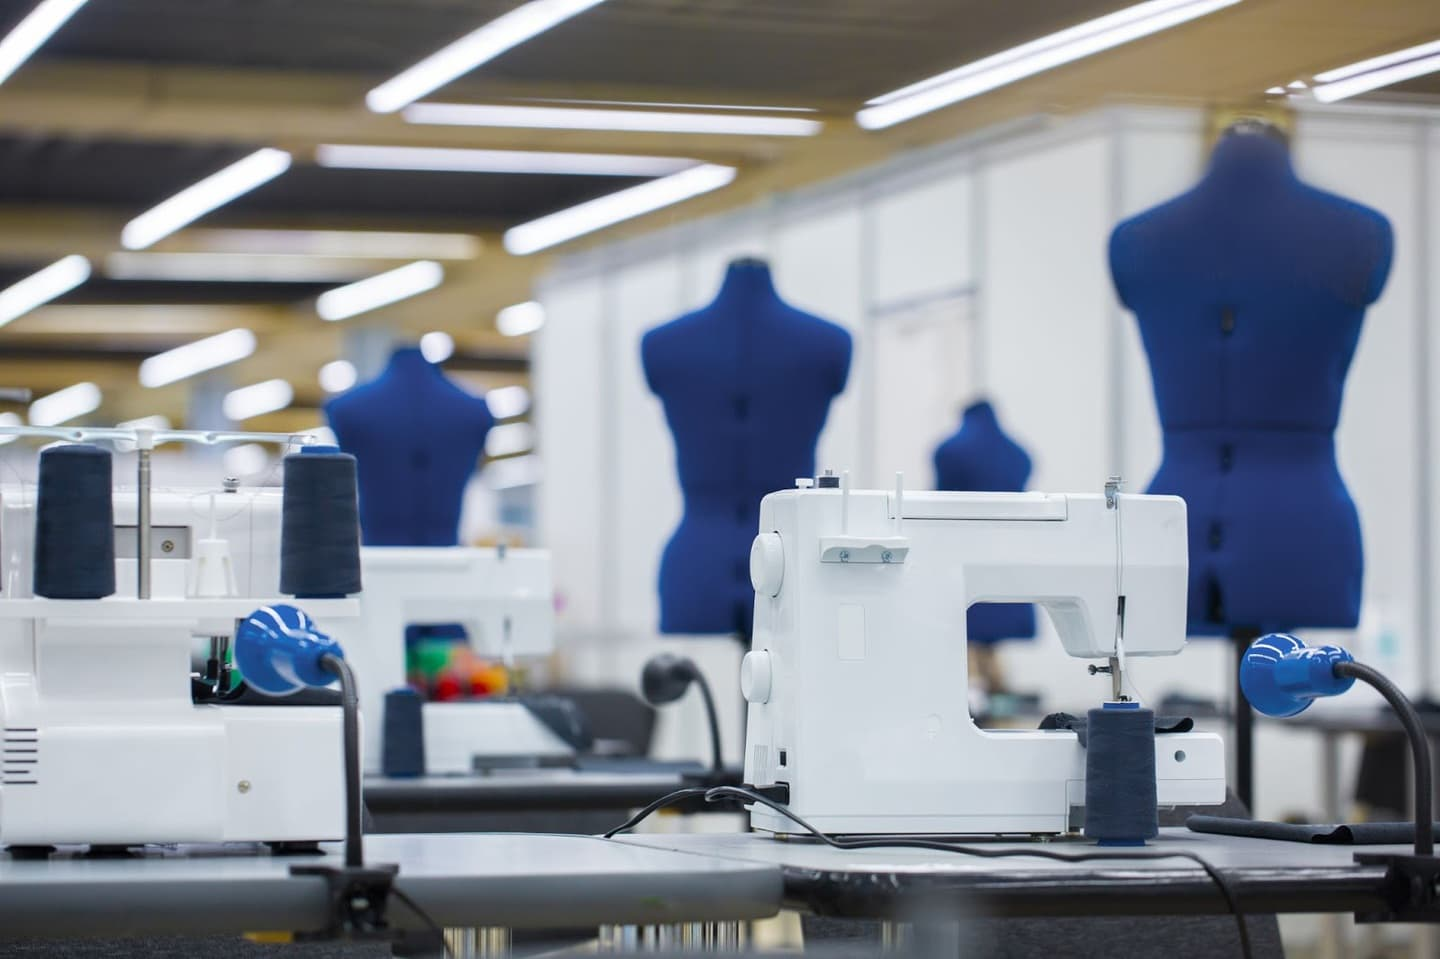 Sewing machines with body forms